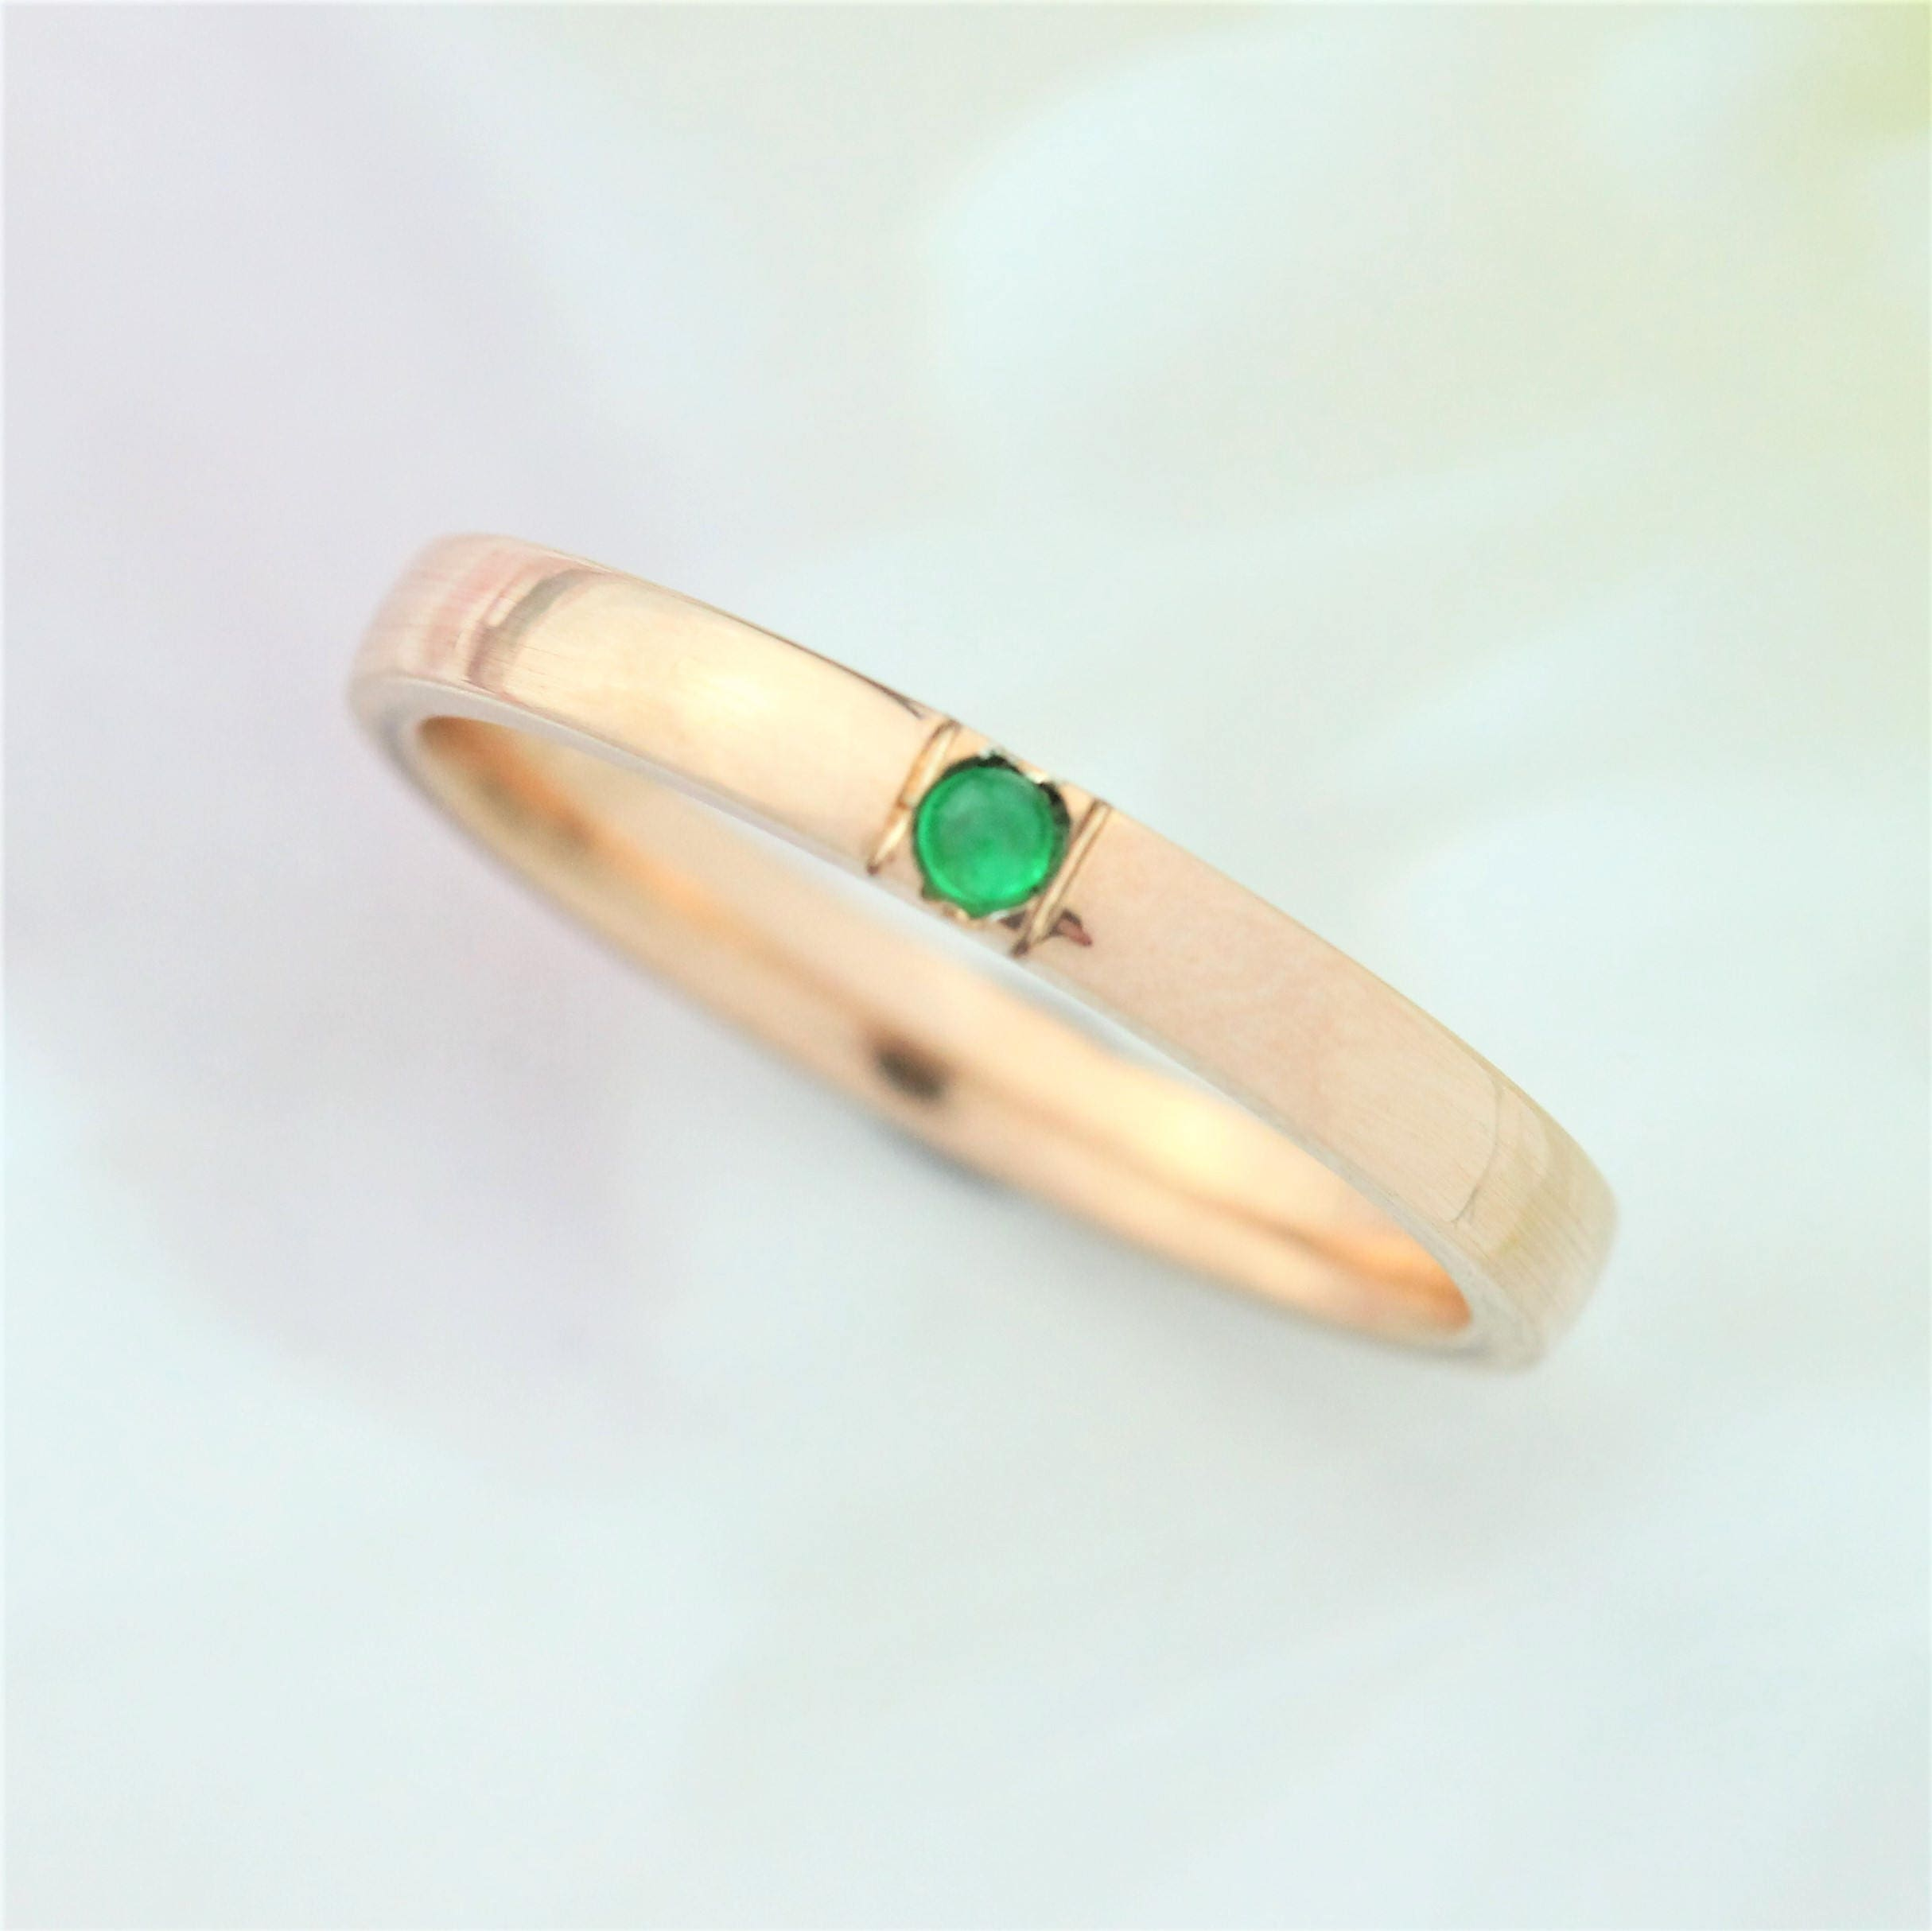 wedding with engagement com diamonds tips ritani cut emerald band buying ring diamond an classic top for blog